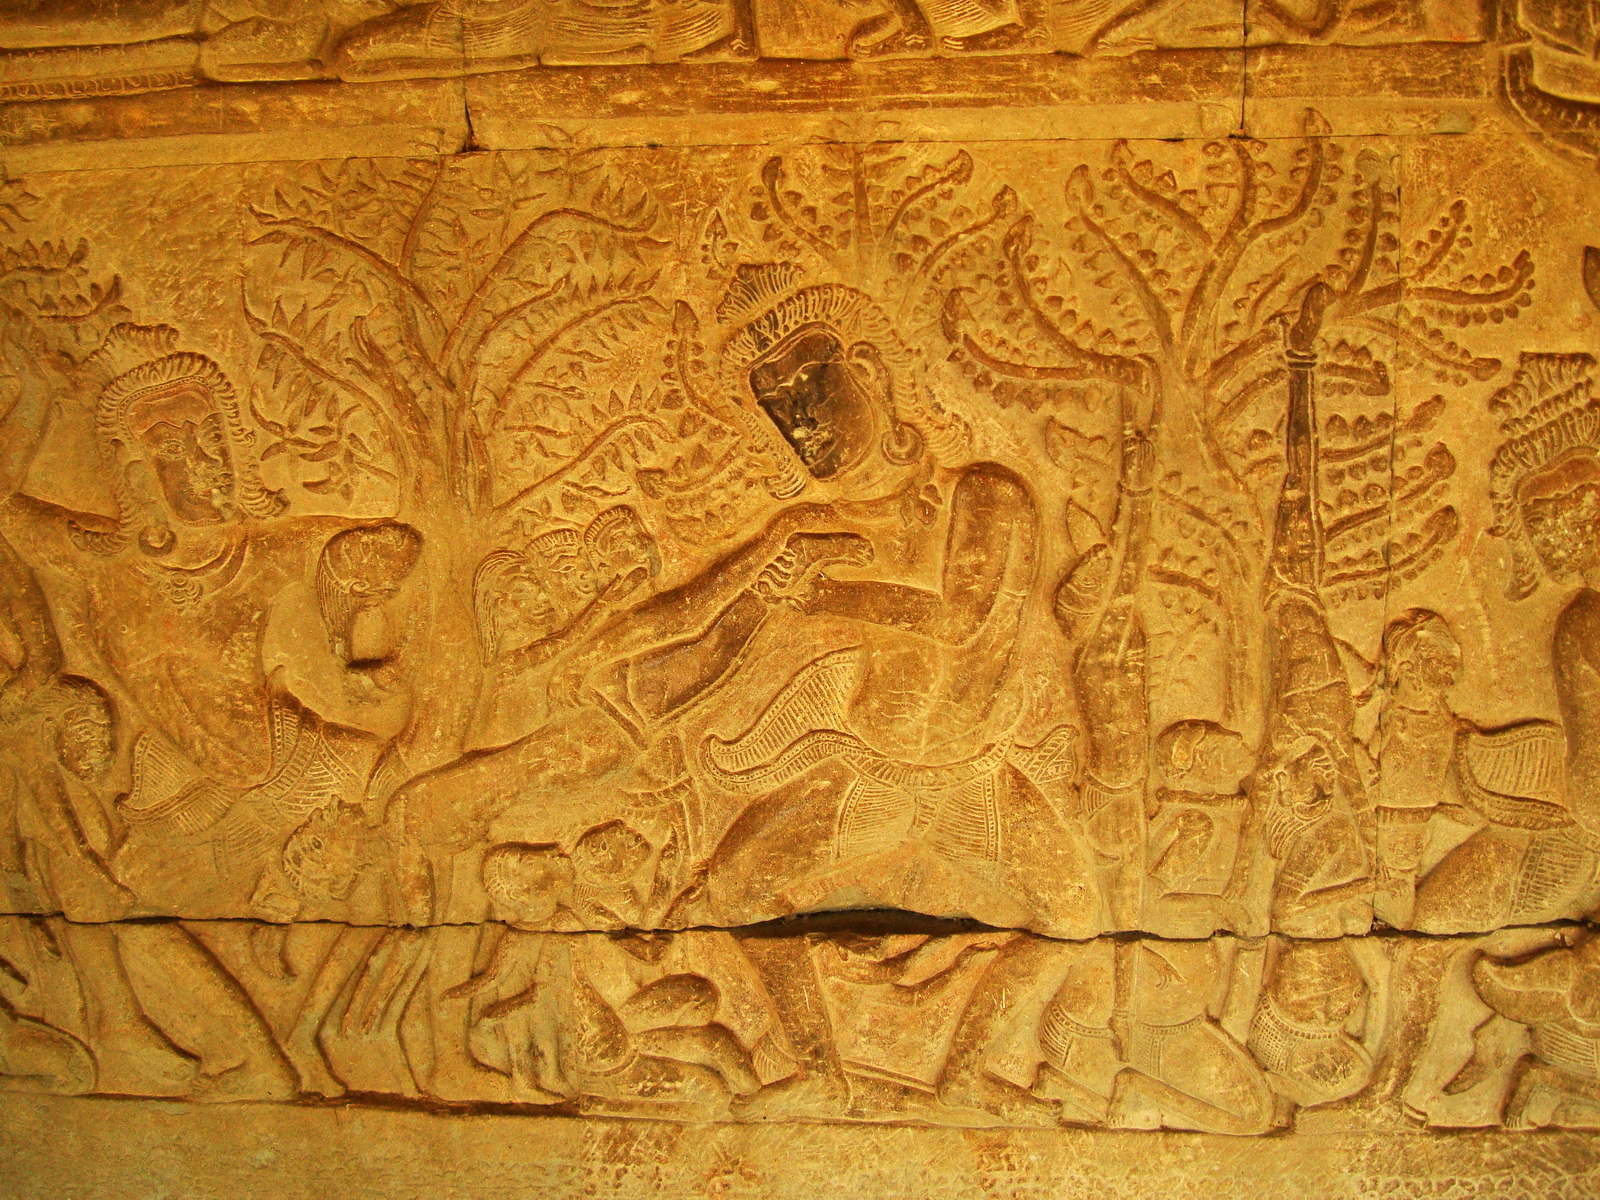 Angkor Wat Bas relief S Gallery E Wing Heavens and Hells 66